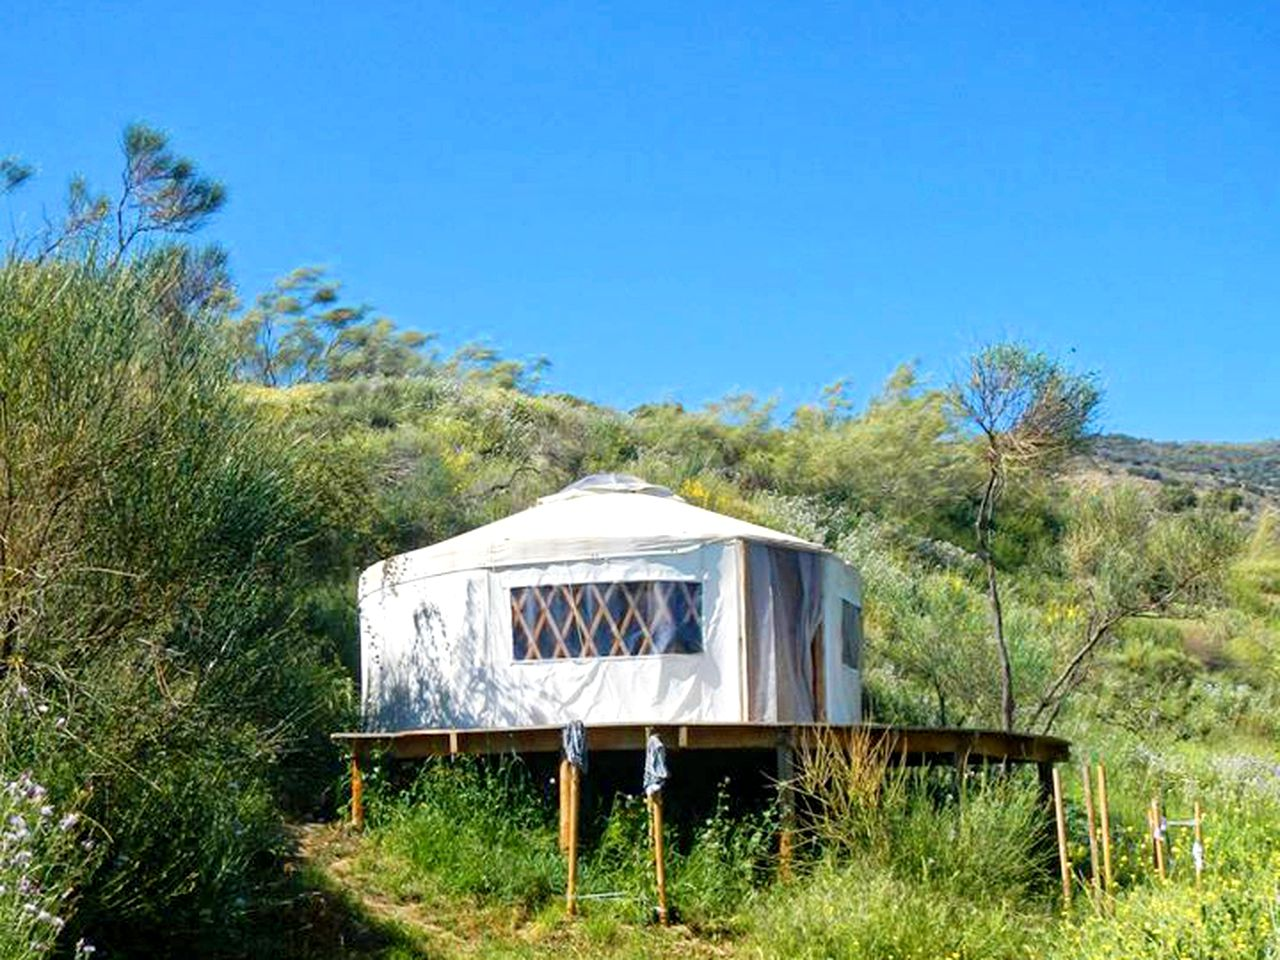 Yurt on a hill in the Sierra Nevada of Spain.